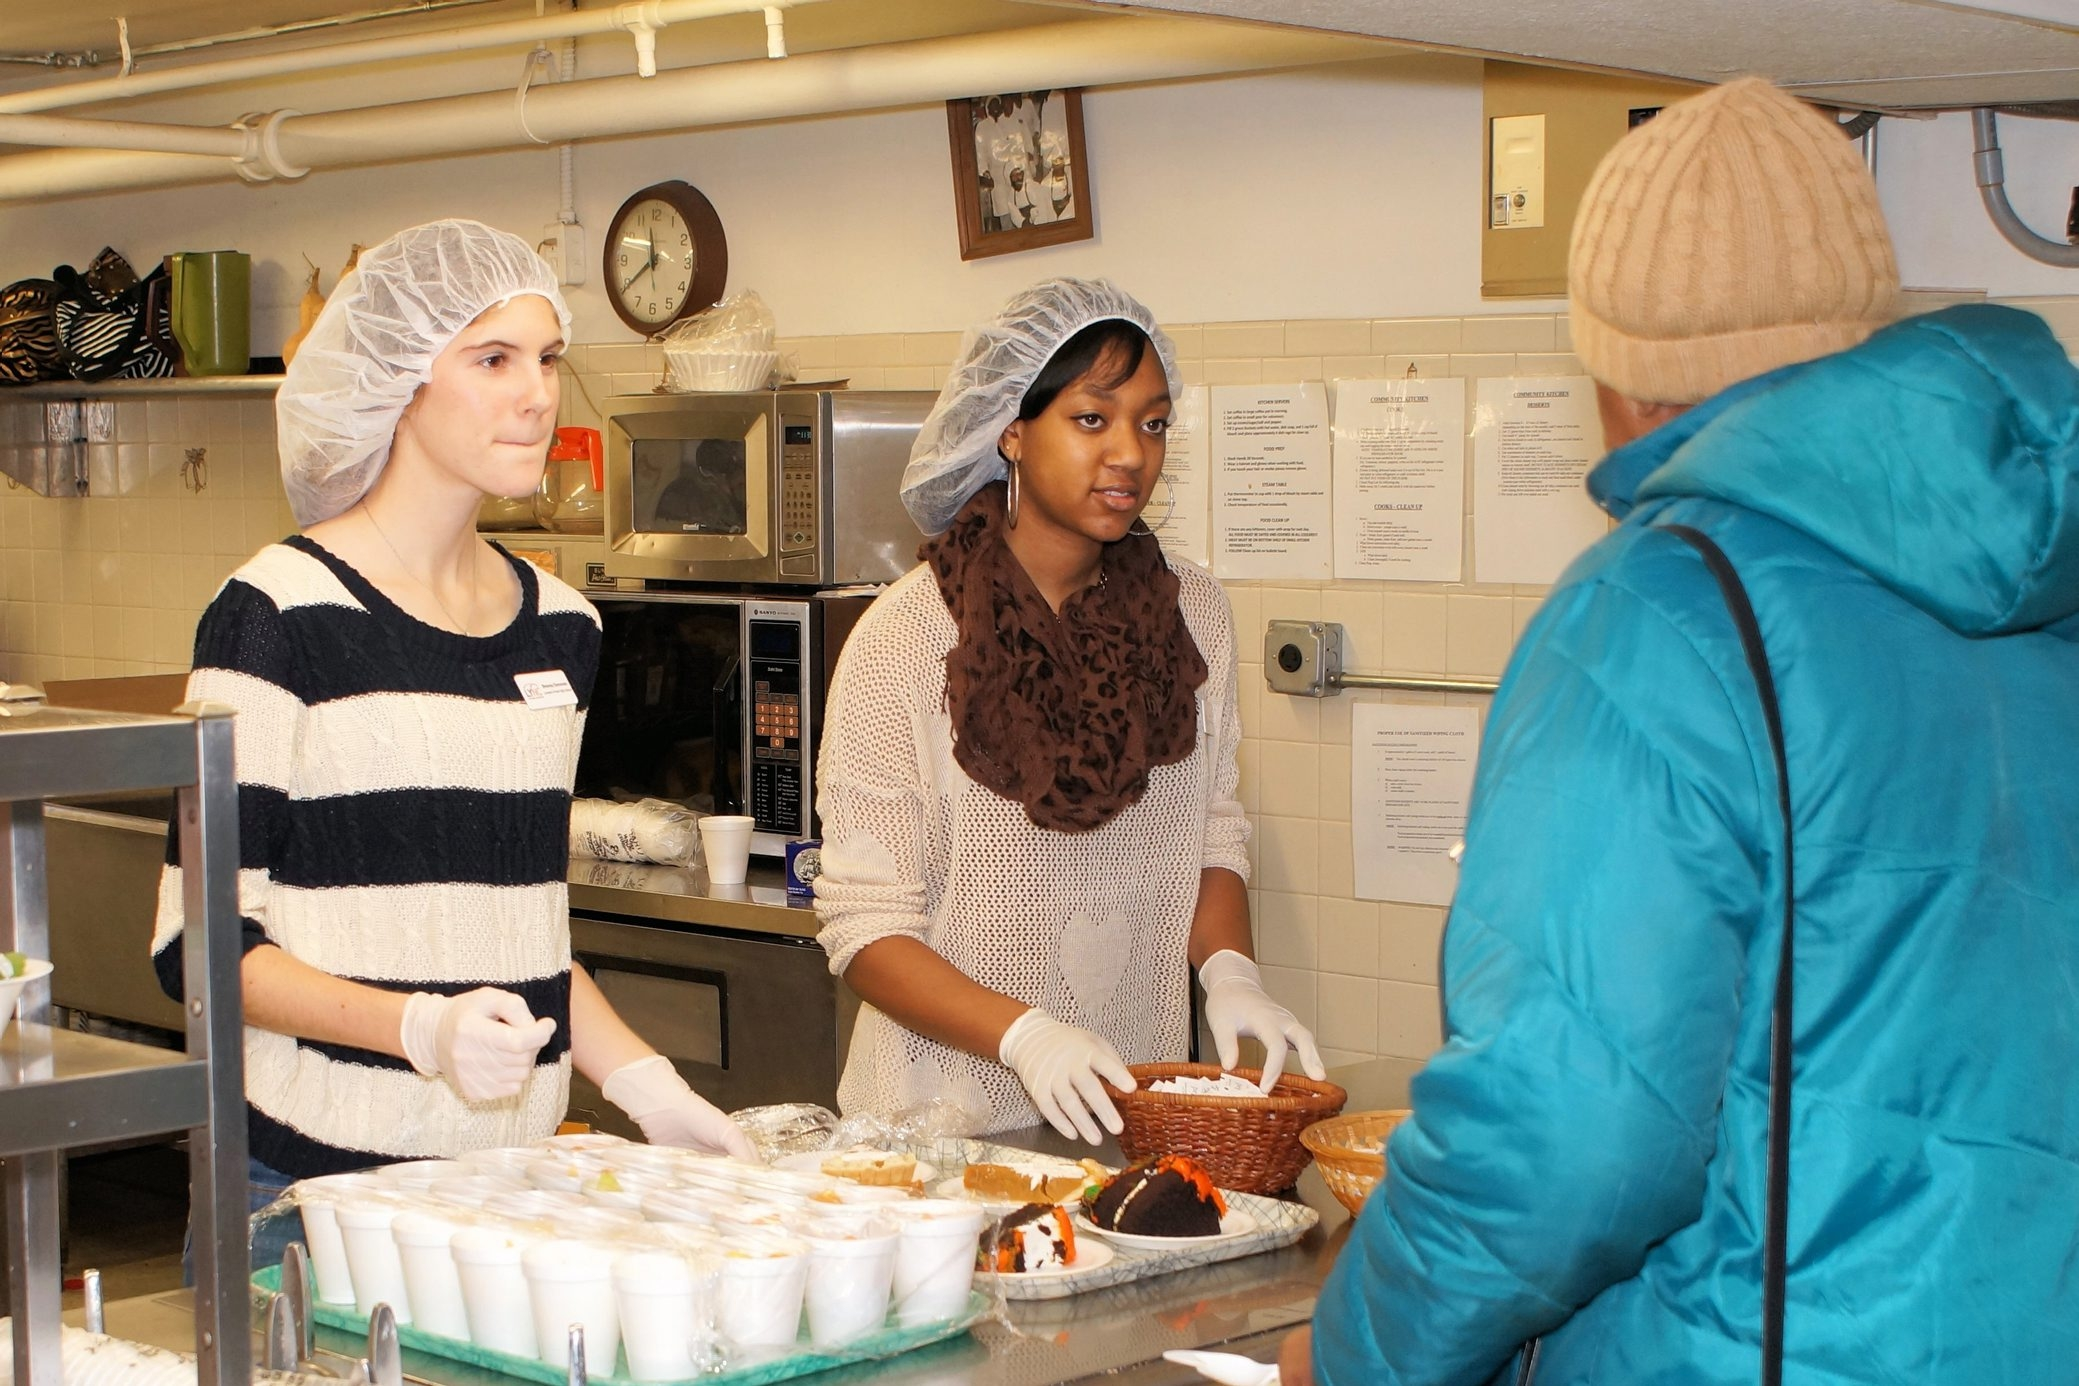 Volunteers from local high schools lend a hand at Community Missions of the Niagara Frontier, serving food in the Community Soup Kitchen.